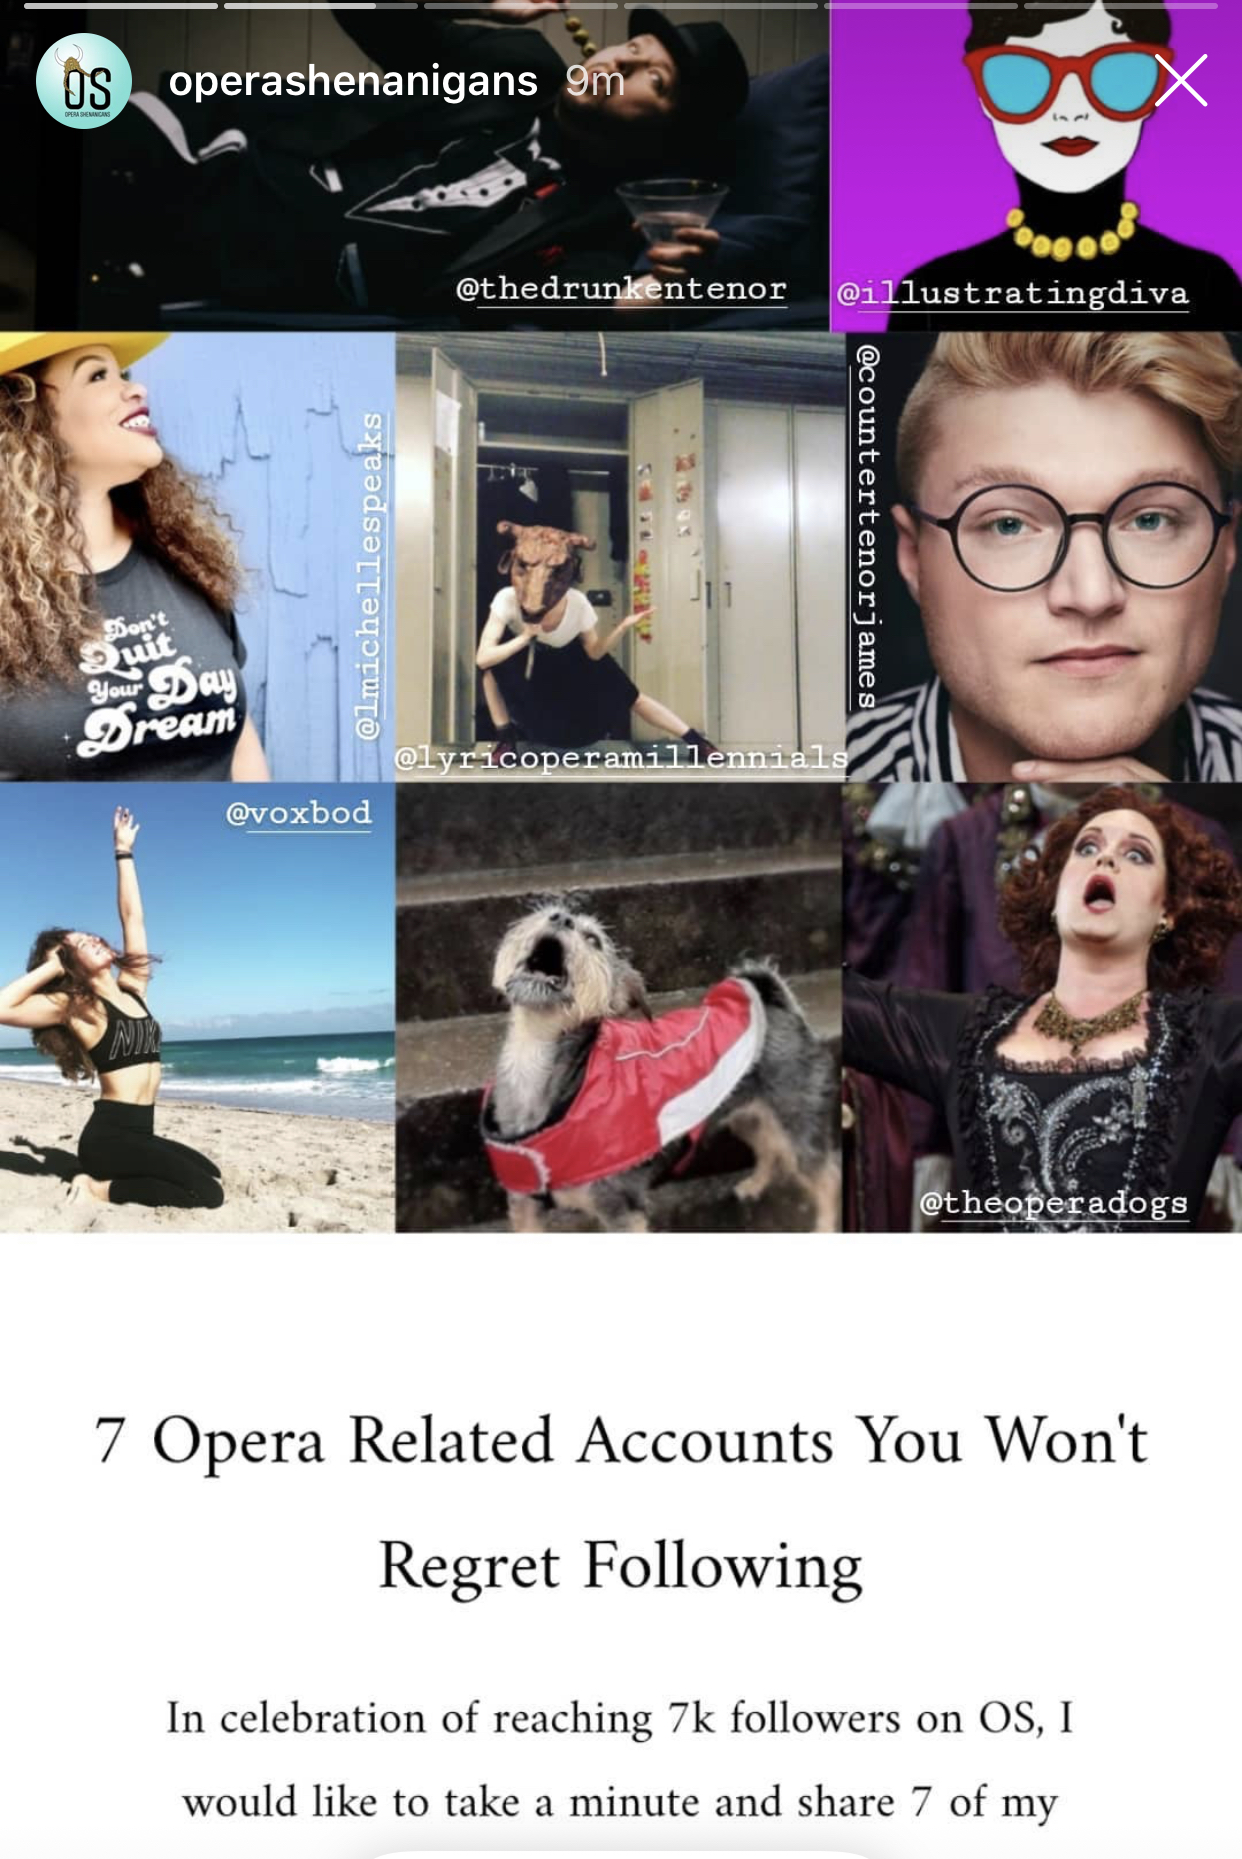 7 Opera Related (IG) Accounts You Won't Regret Following–Opera Shenanigans